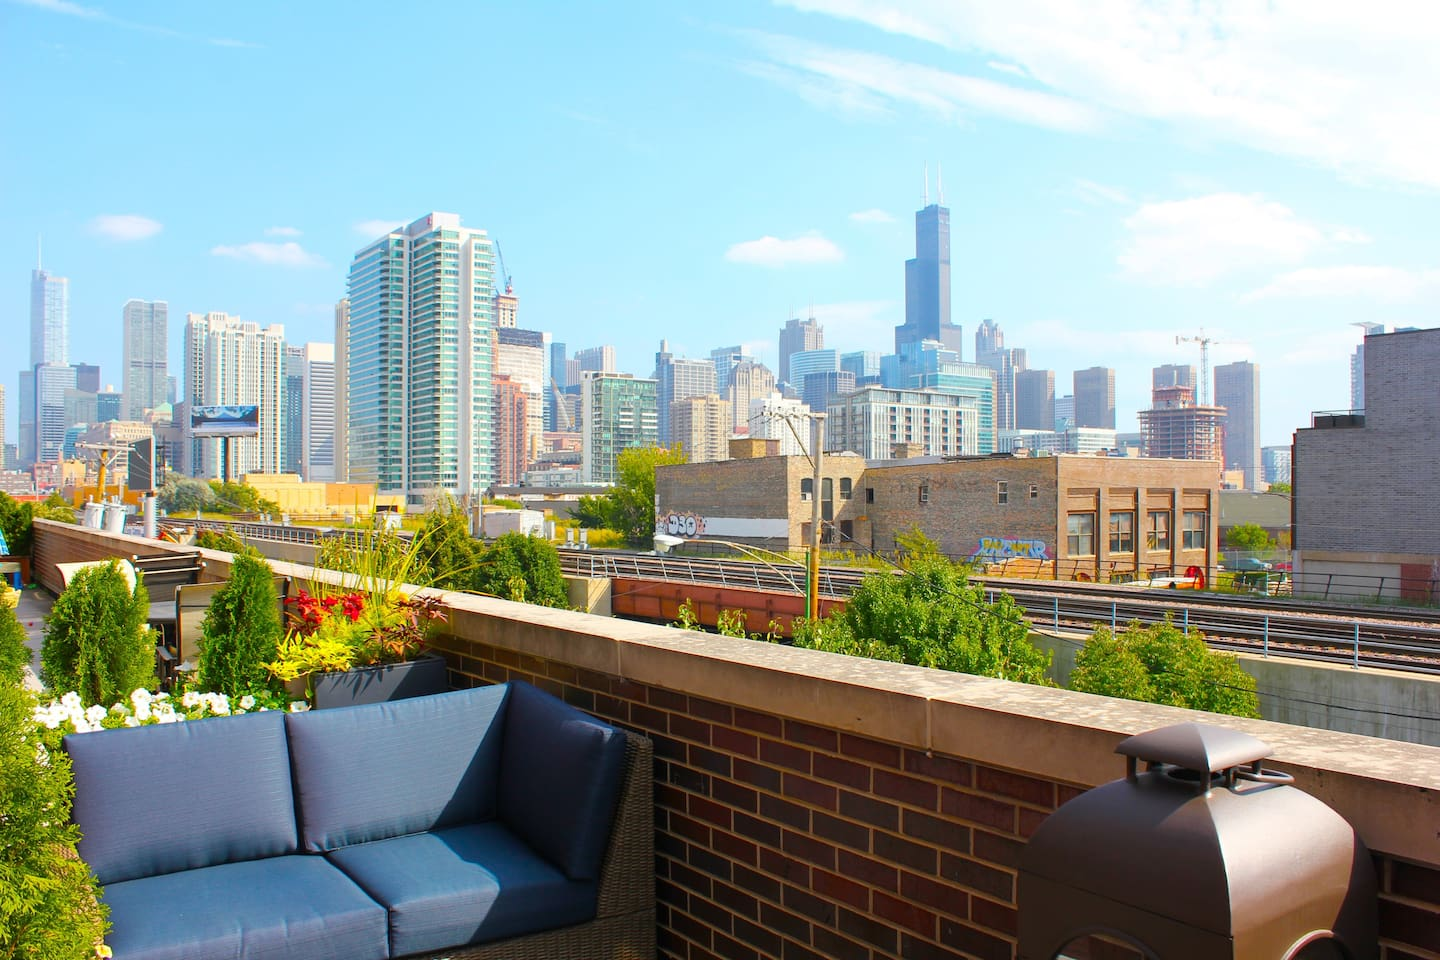 ★ FULTON MARKET TOWNHOUSE★ a magical and modern city getaway, nestled on the quiet edge of downtown Chicago, with stunning views of the city skyline